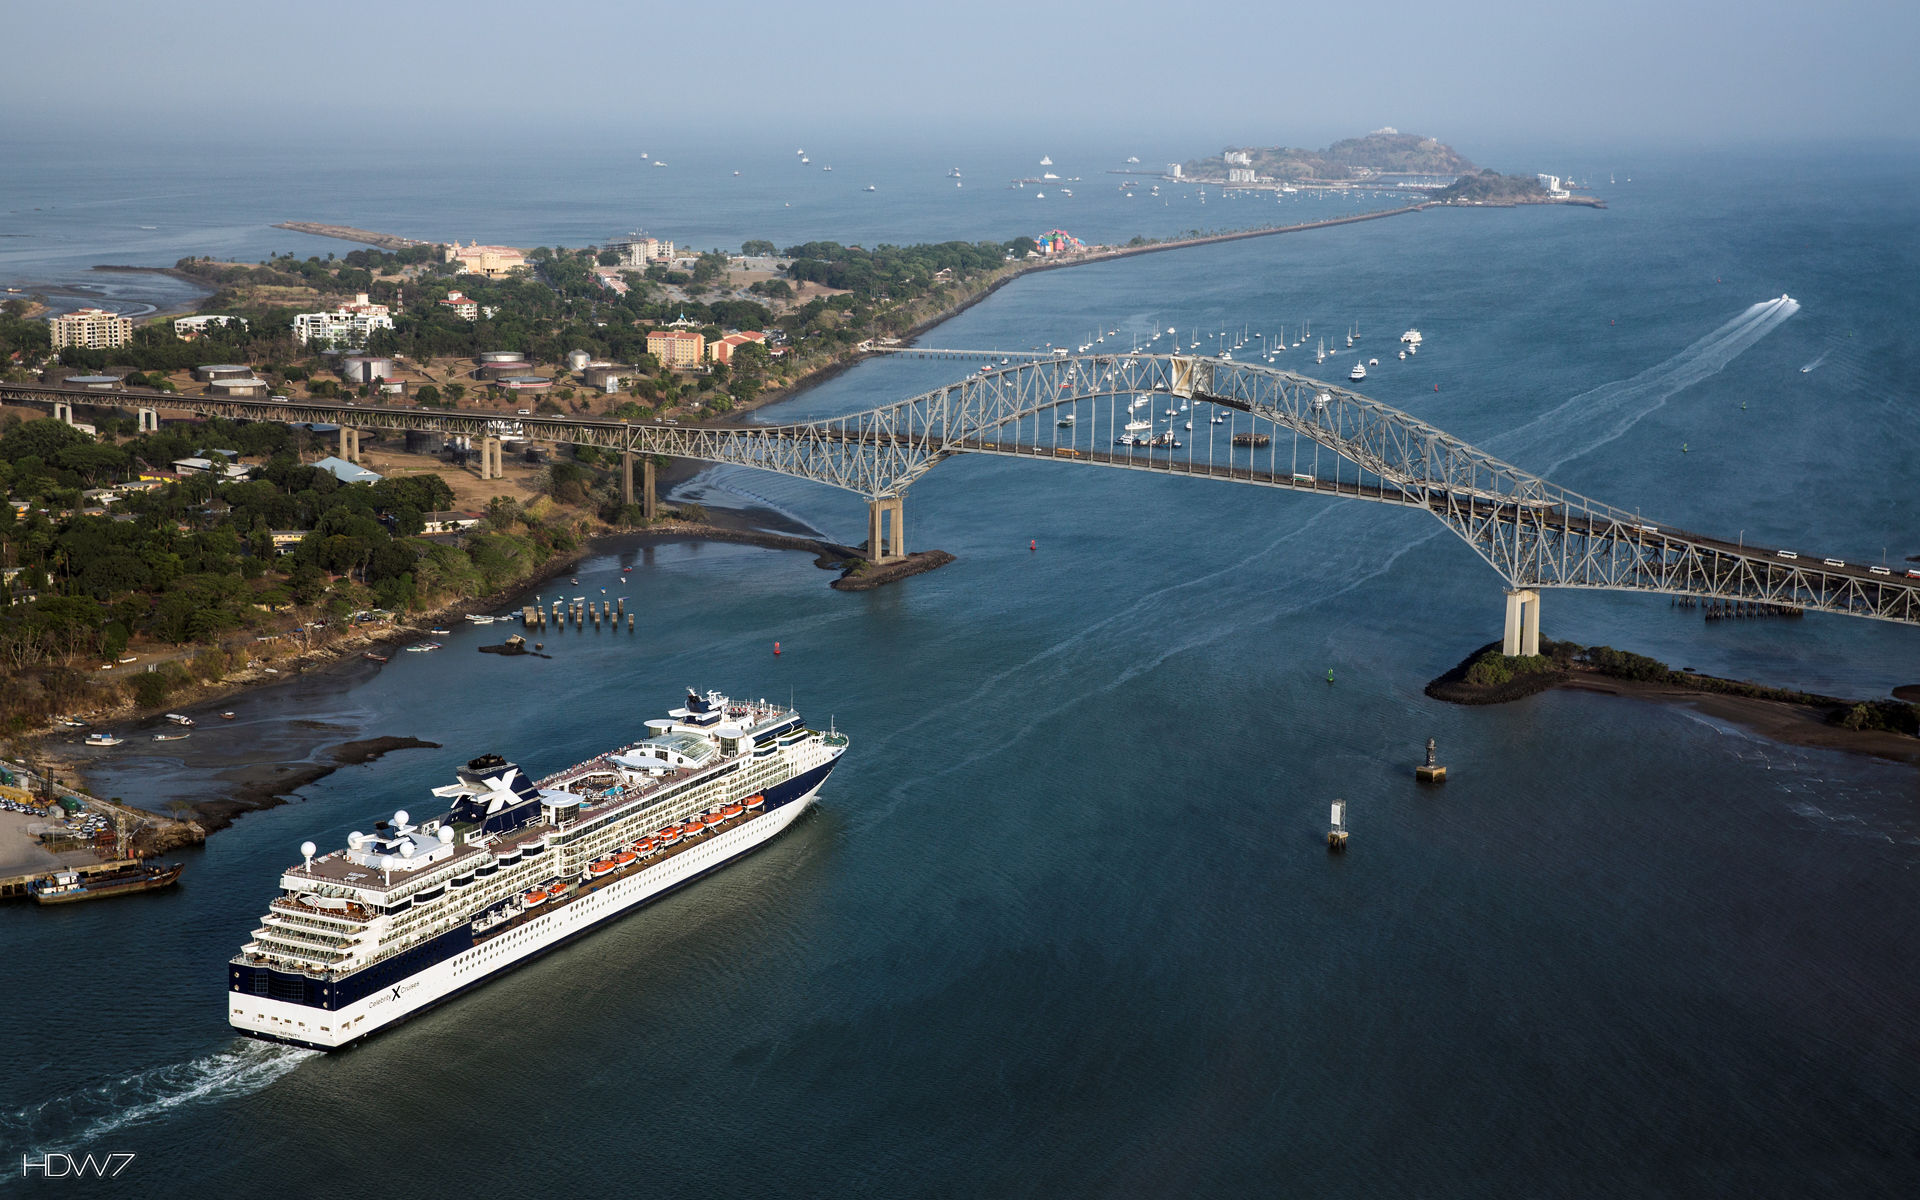 celebrity cruises ship approaches the bridge of the ... Paramore Amsterdam